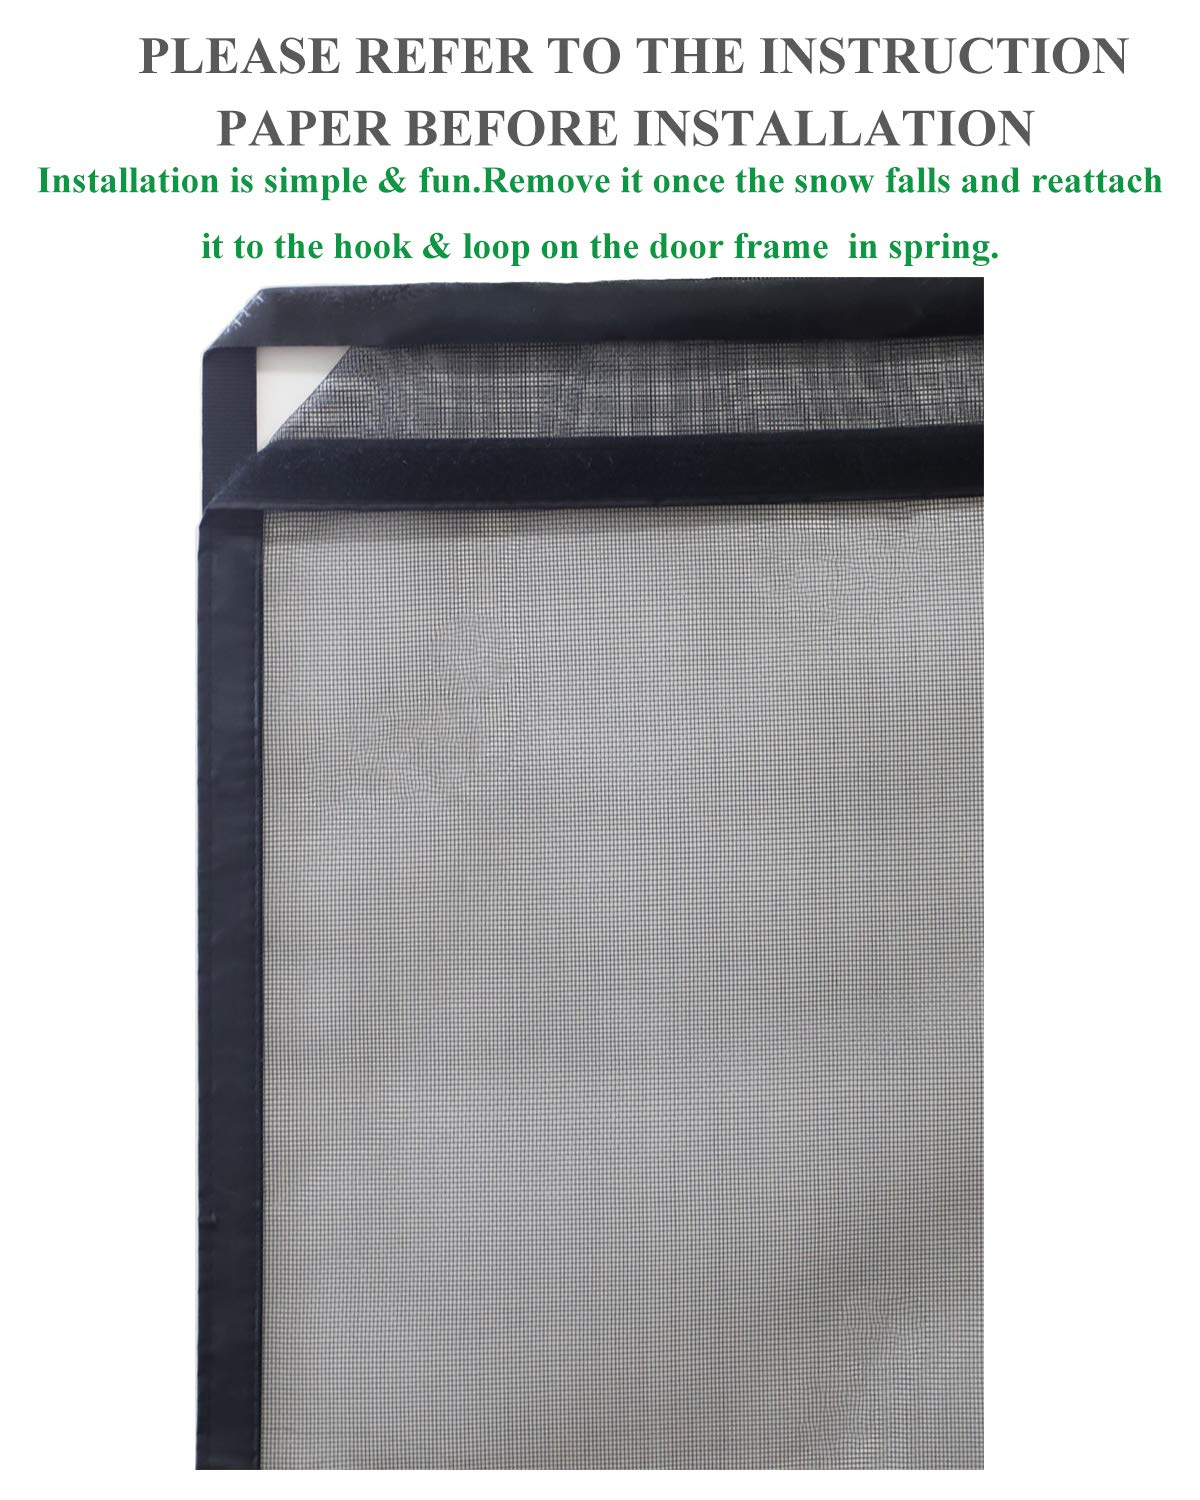 Fiberglass Mesh Magnetic Screen Door 48x83 Instant Mosquito and Flying Insects Bug Out Net Curtain Upgrade Version